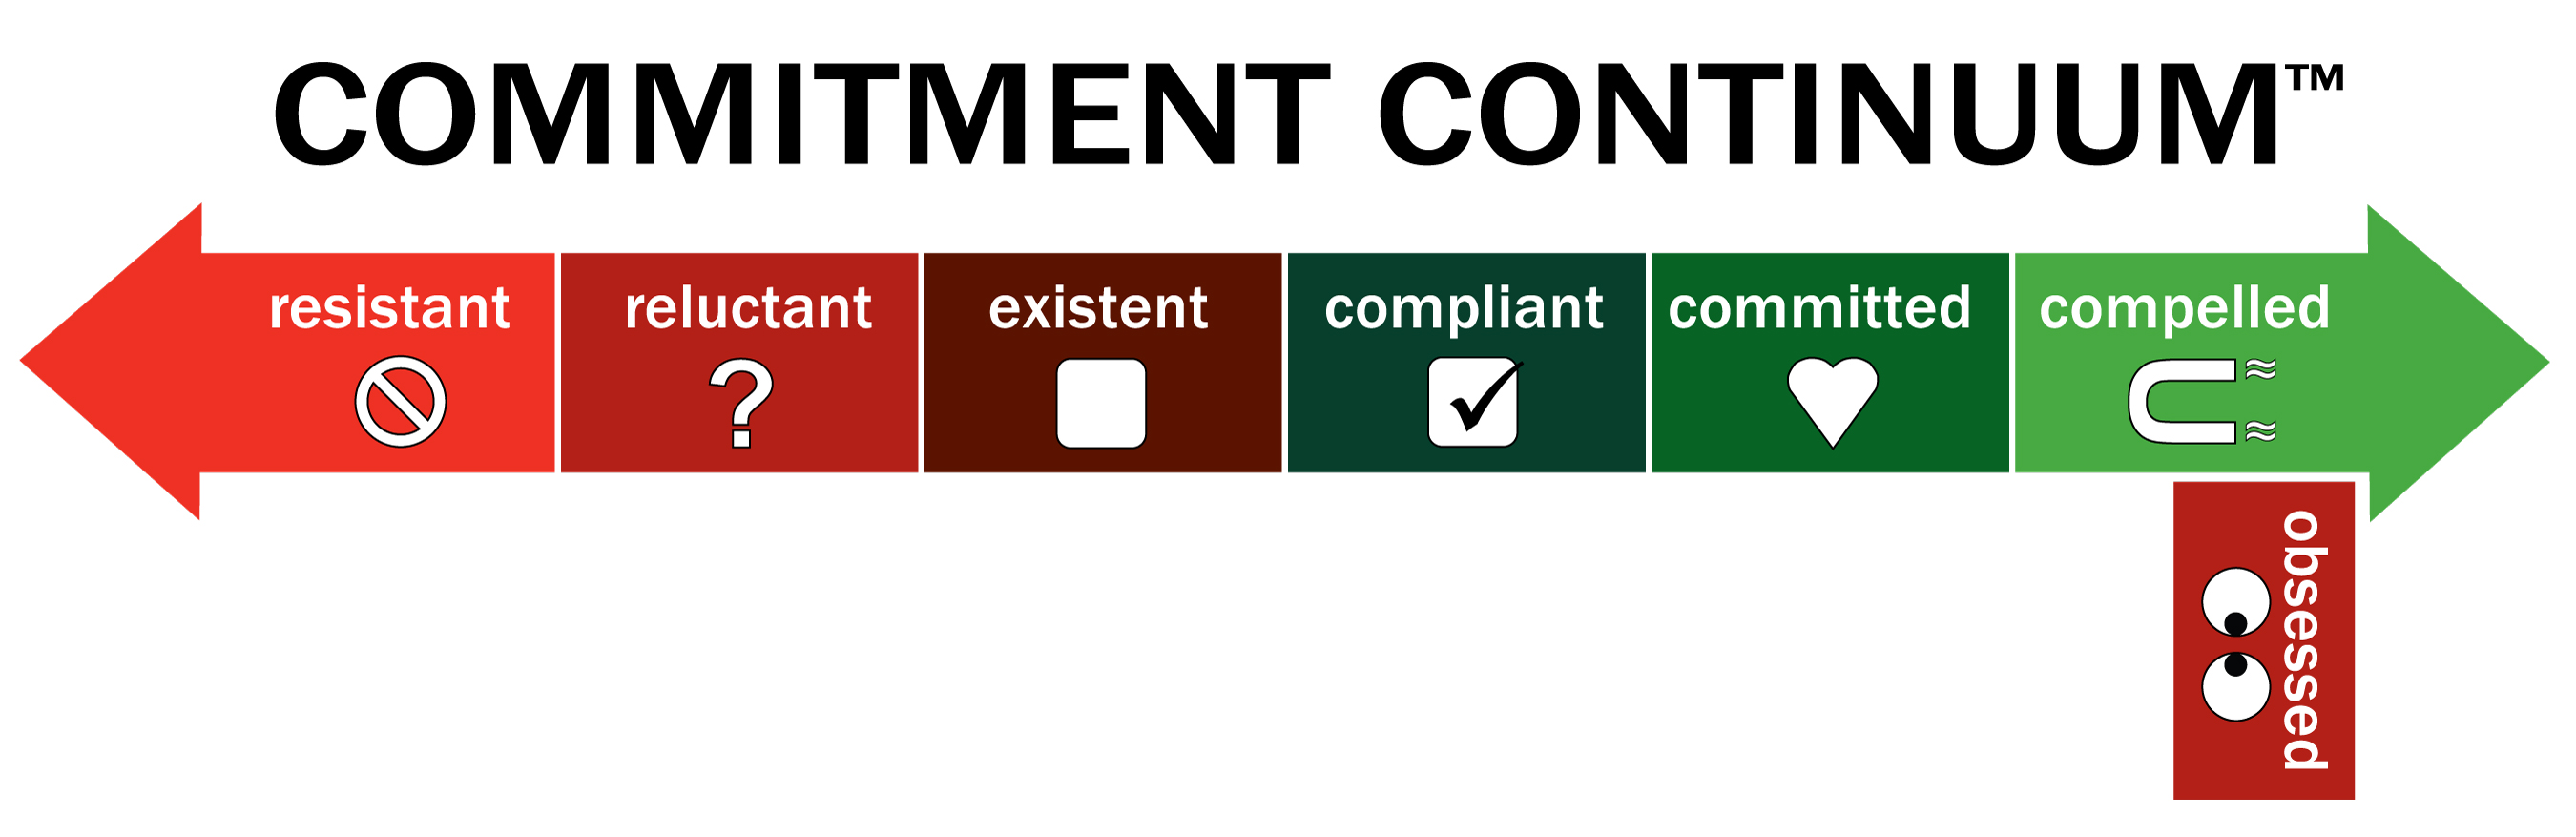 Commitment_Continuum_arrow_w_title